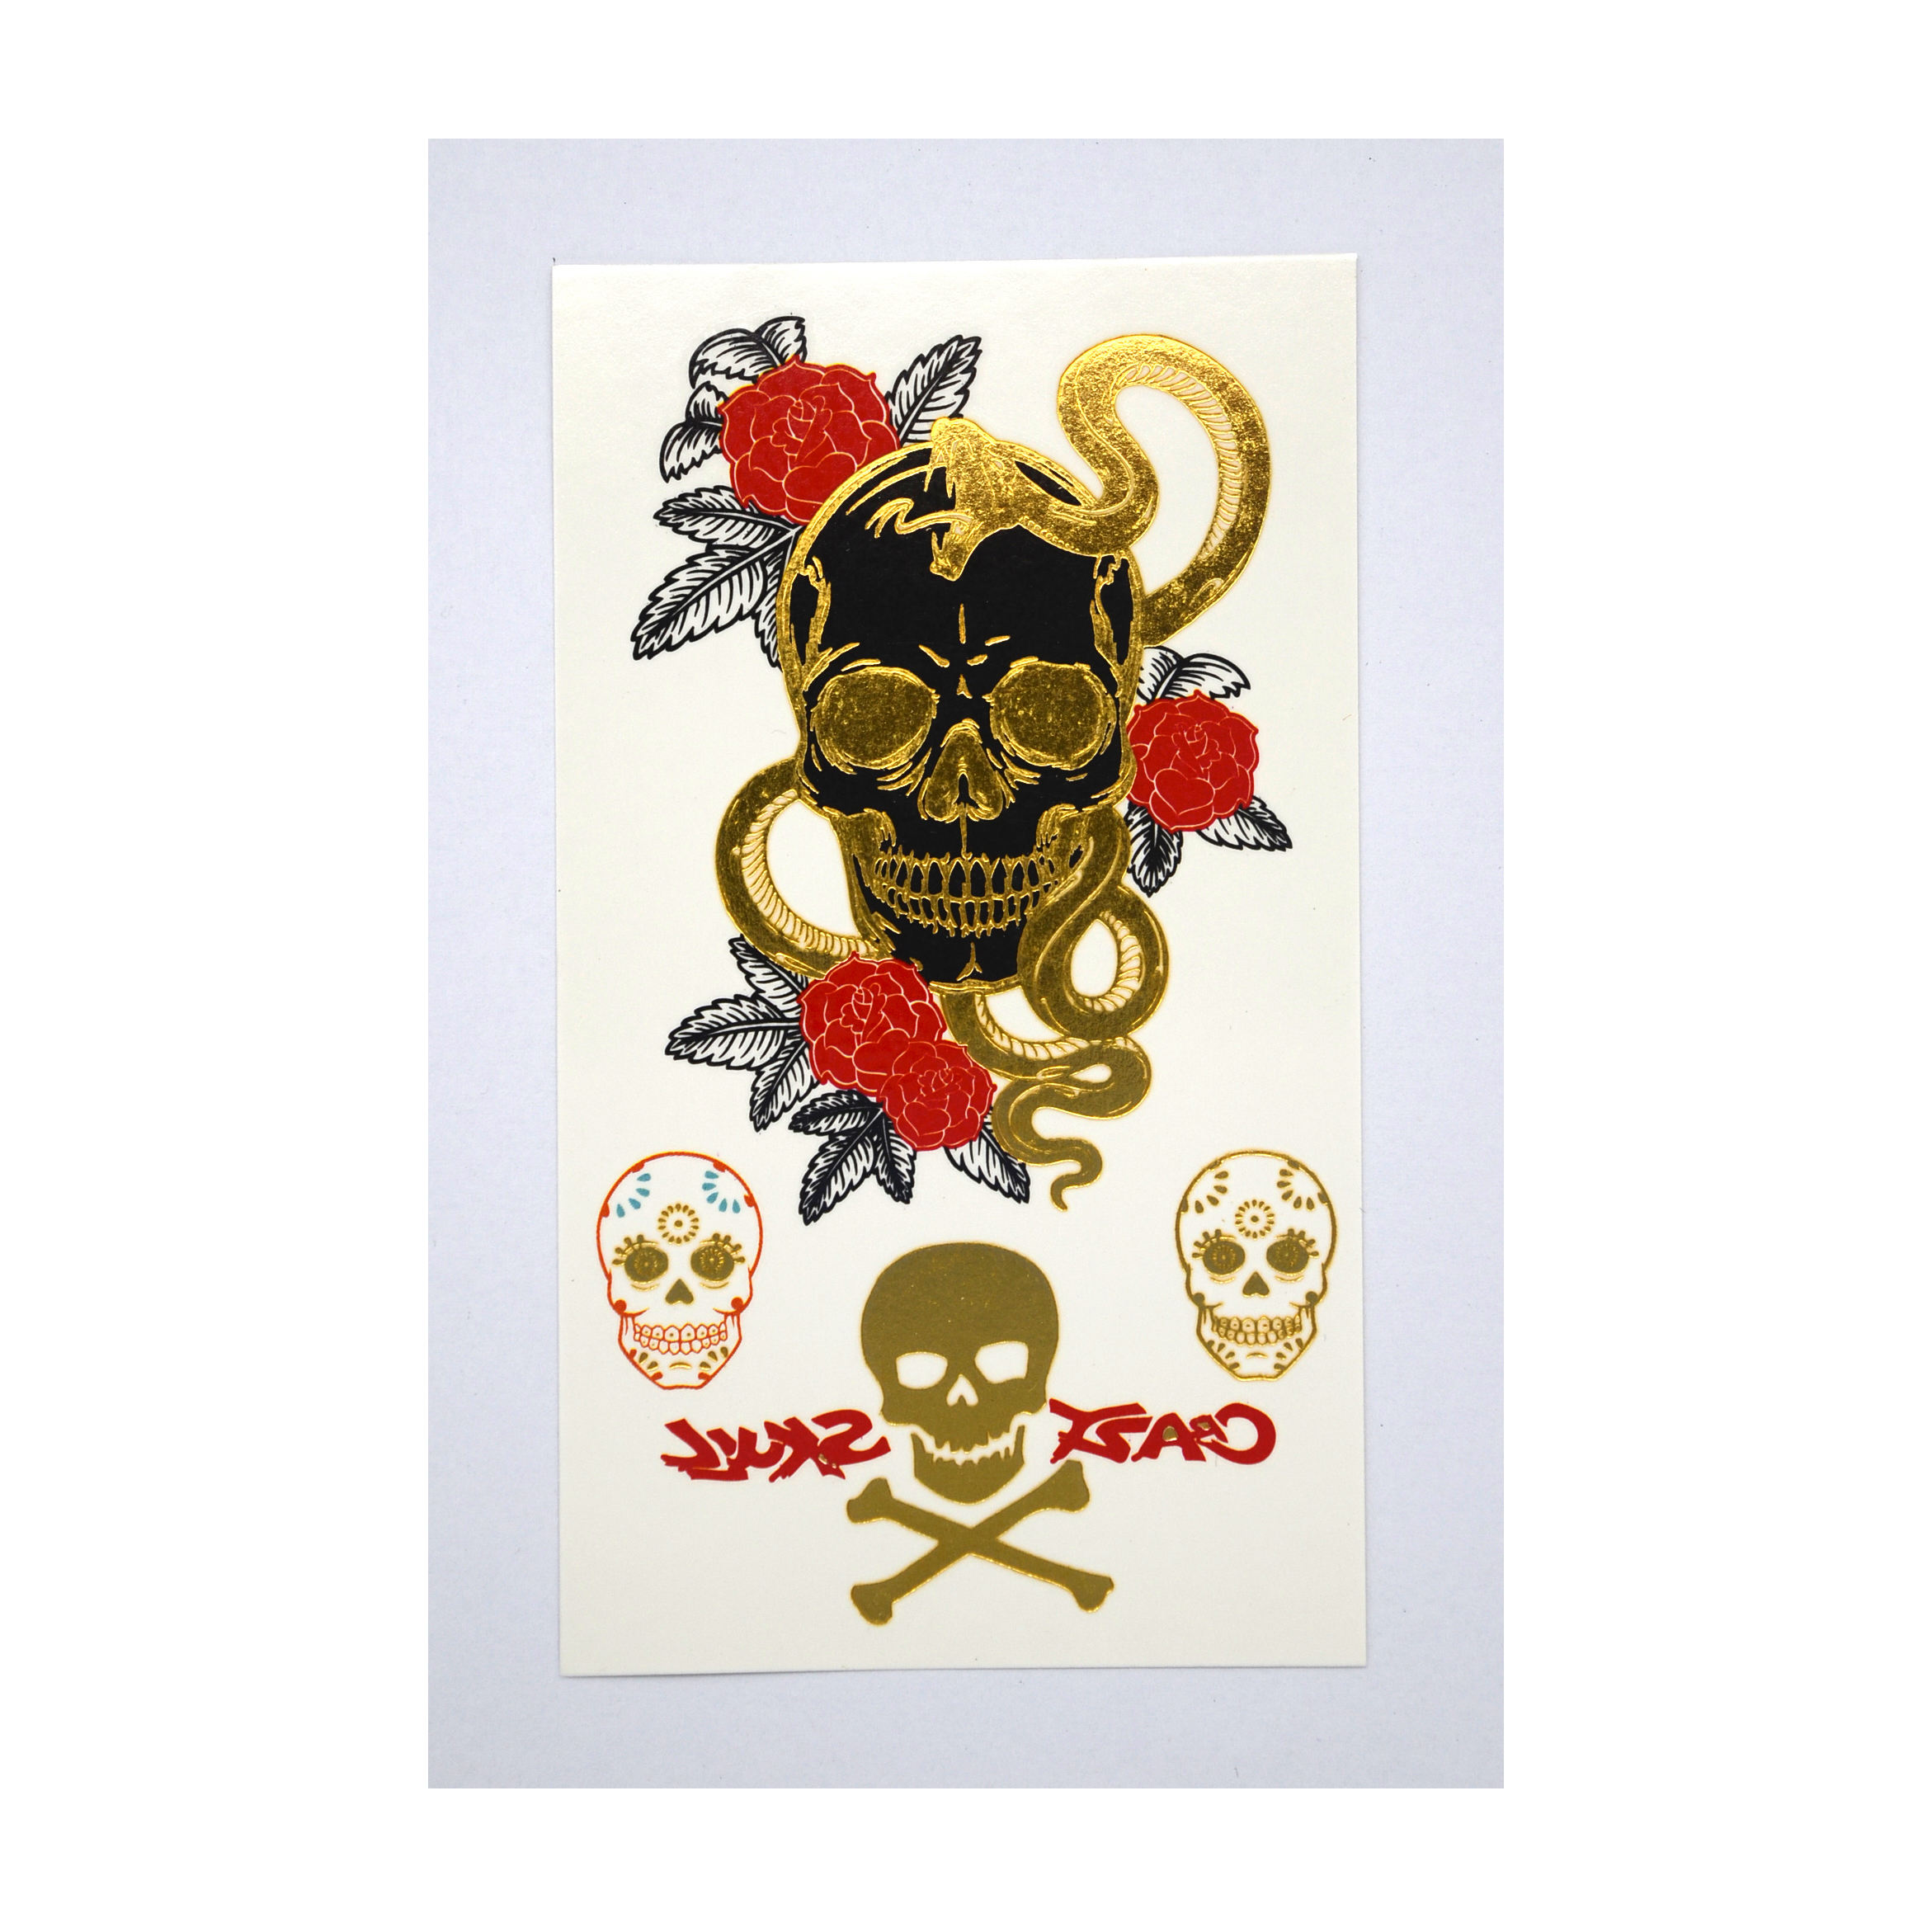 Gouden Metallic Tijdelijke Tattoo Sticker kleine body Tattoo in High definition printing